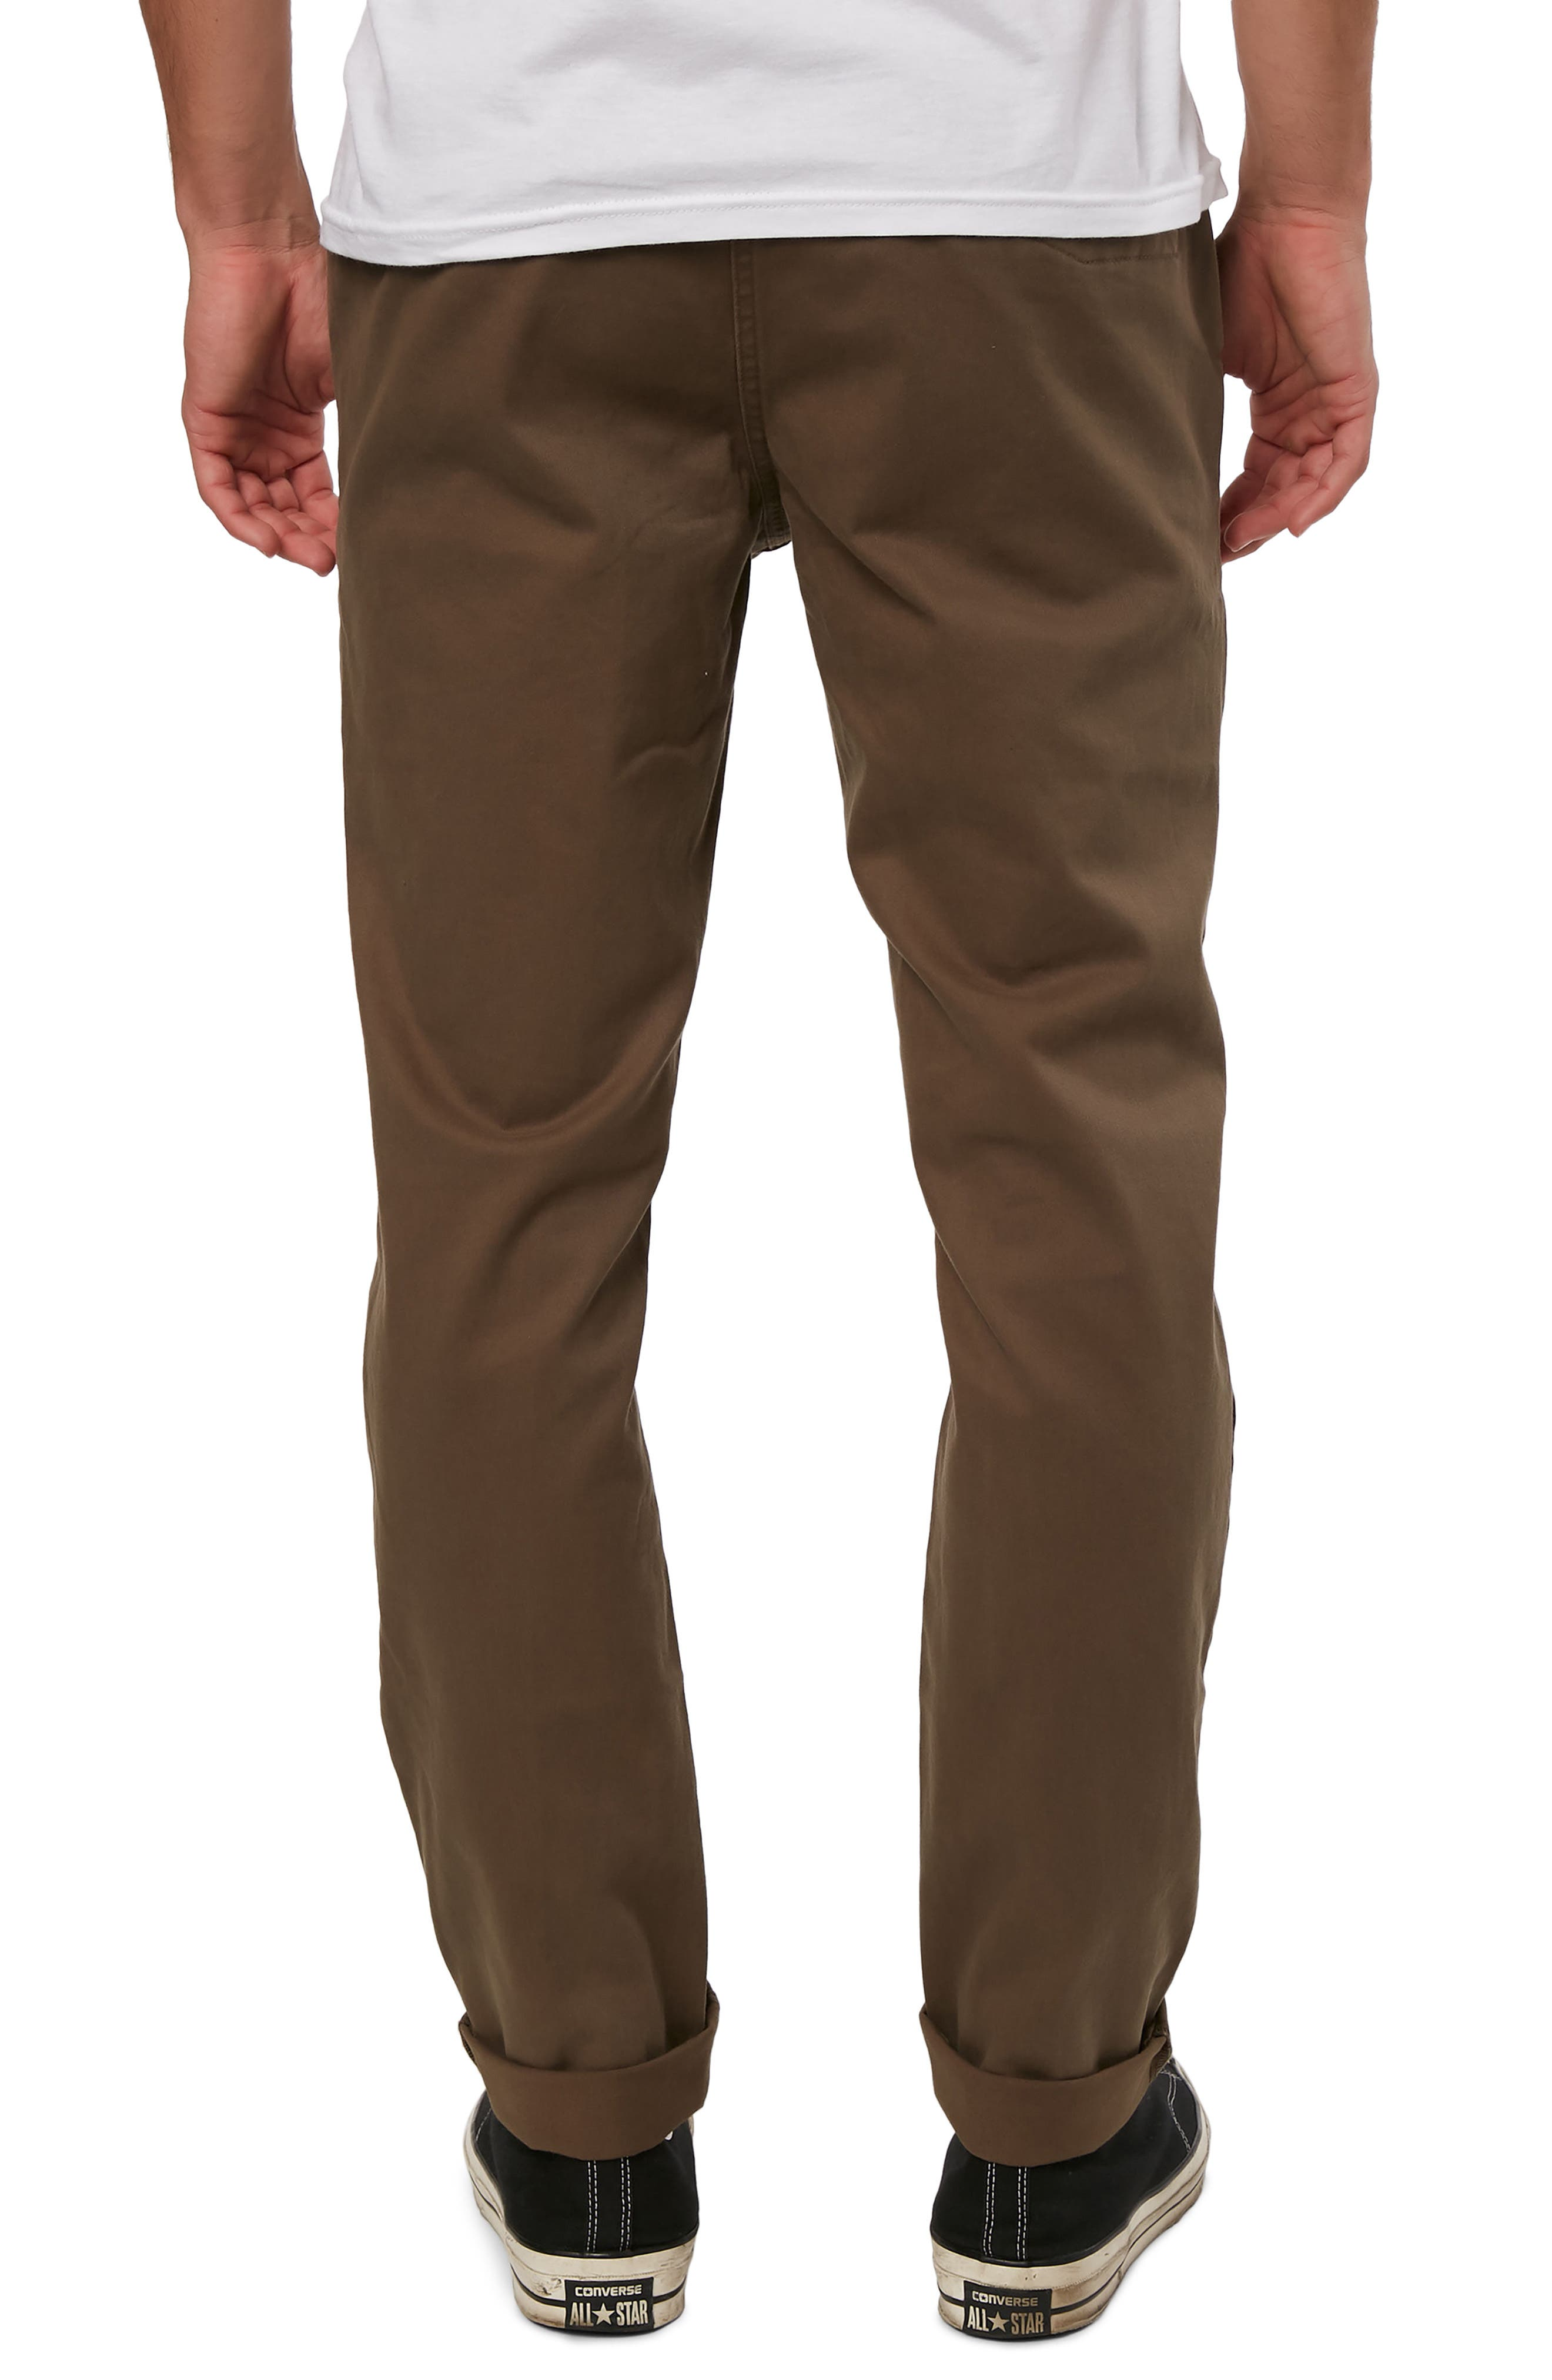 Mission Stretch Chino Pants,                             Alternate thumbnail 2, color,                             MILITARY GREEN